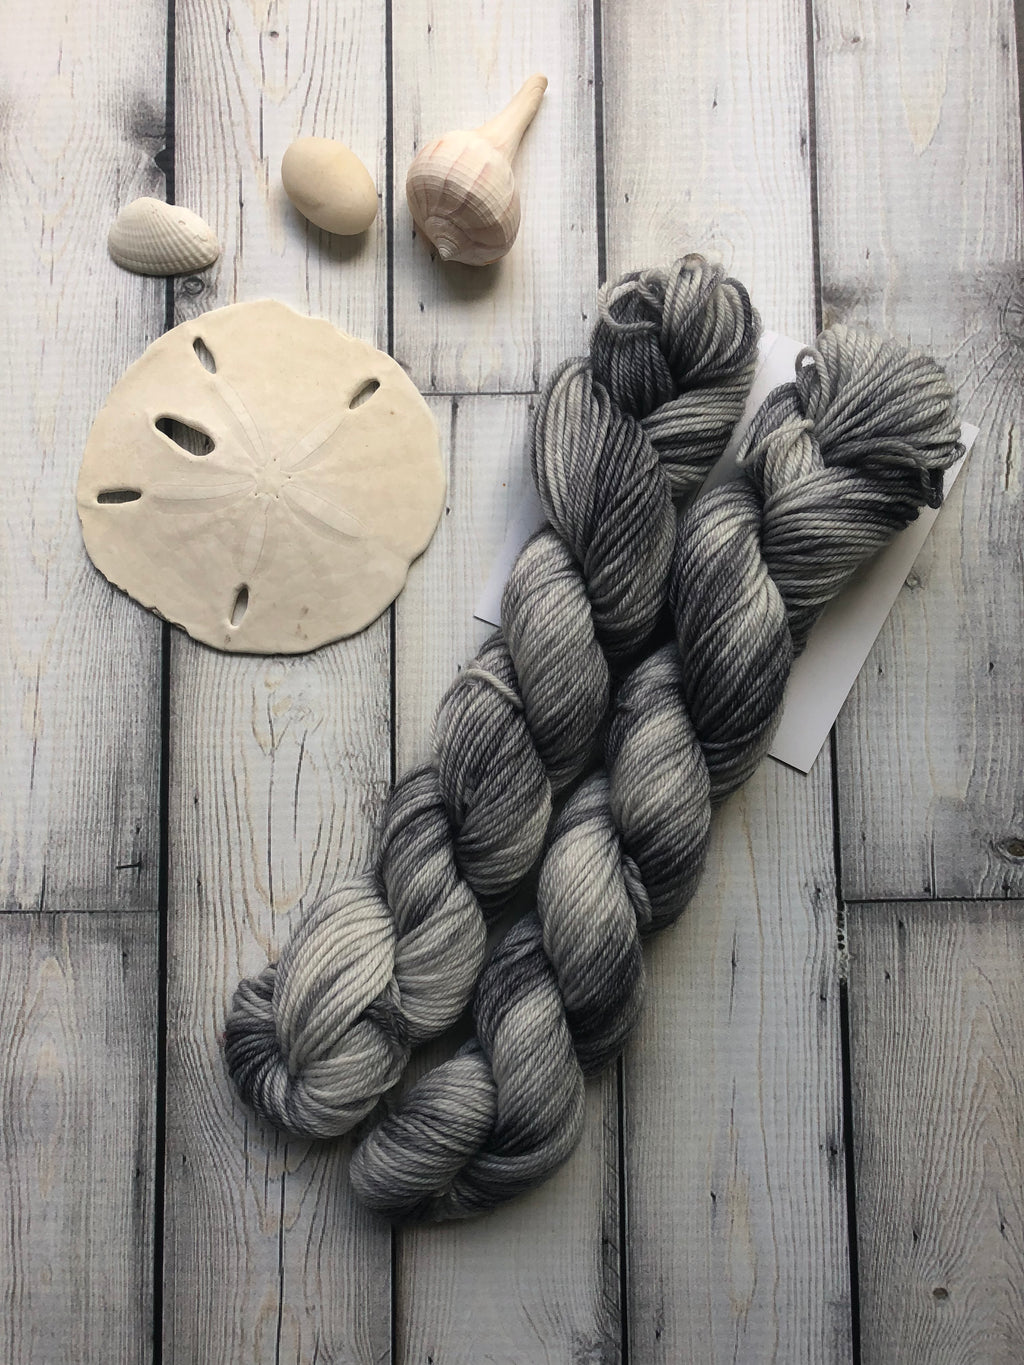 20g Sock Yarn Mini Skein - Stormy Gray Tonal